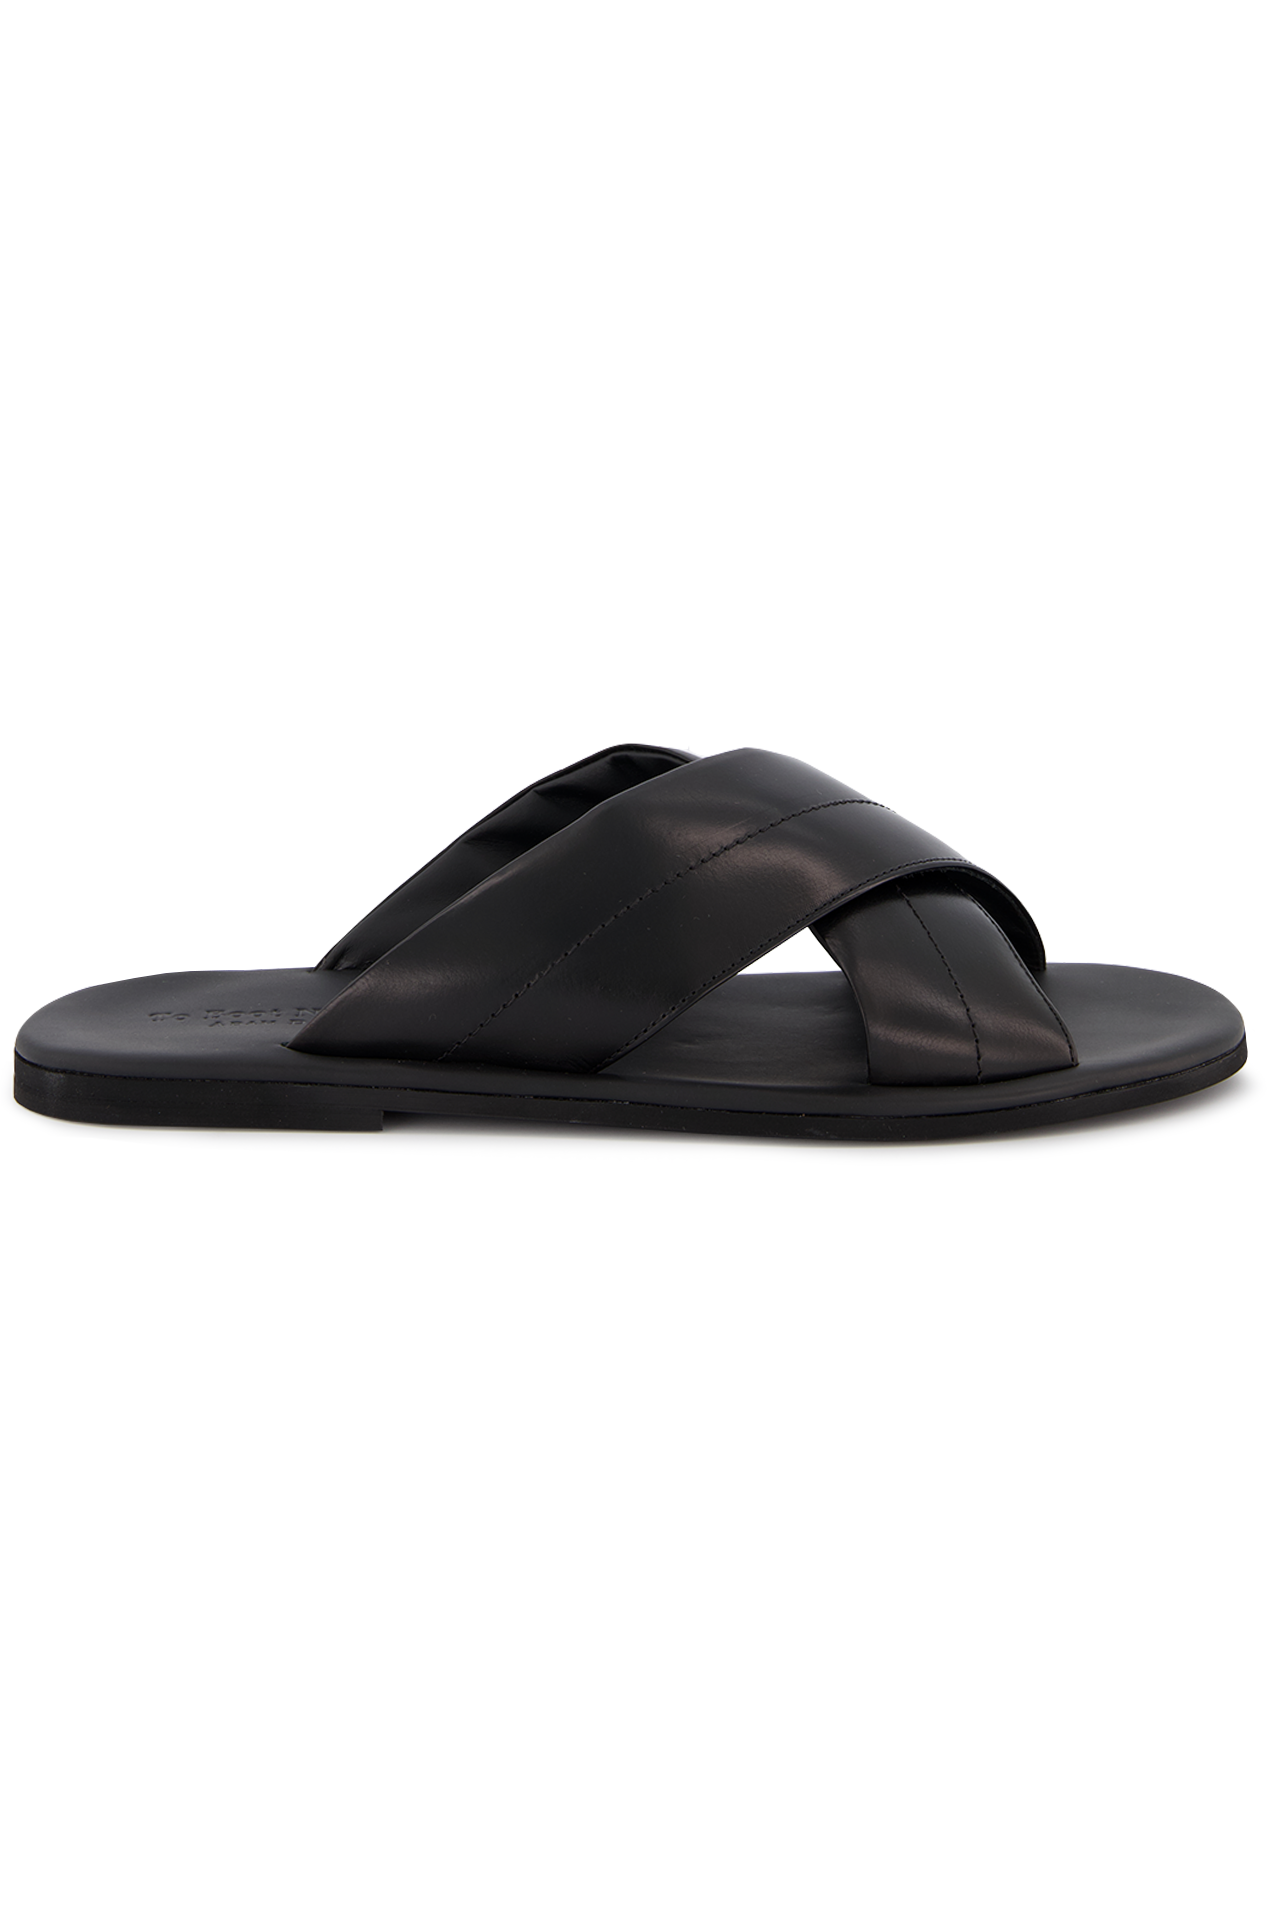 Side view image of To Boot New York Costa Rica Slide Sandal Nero